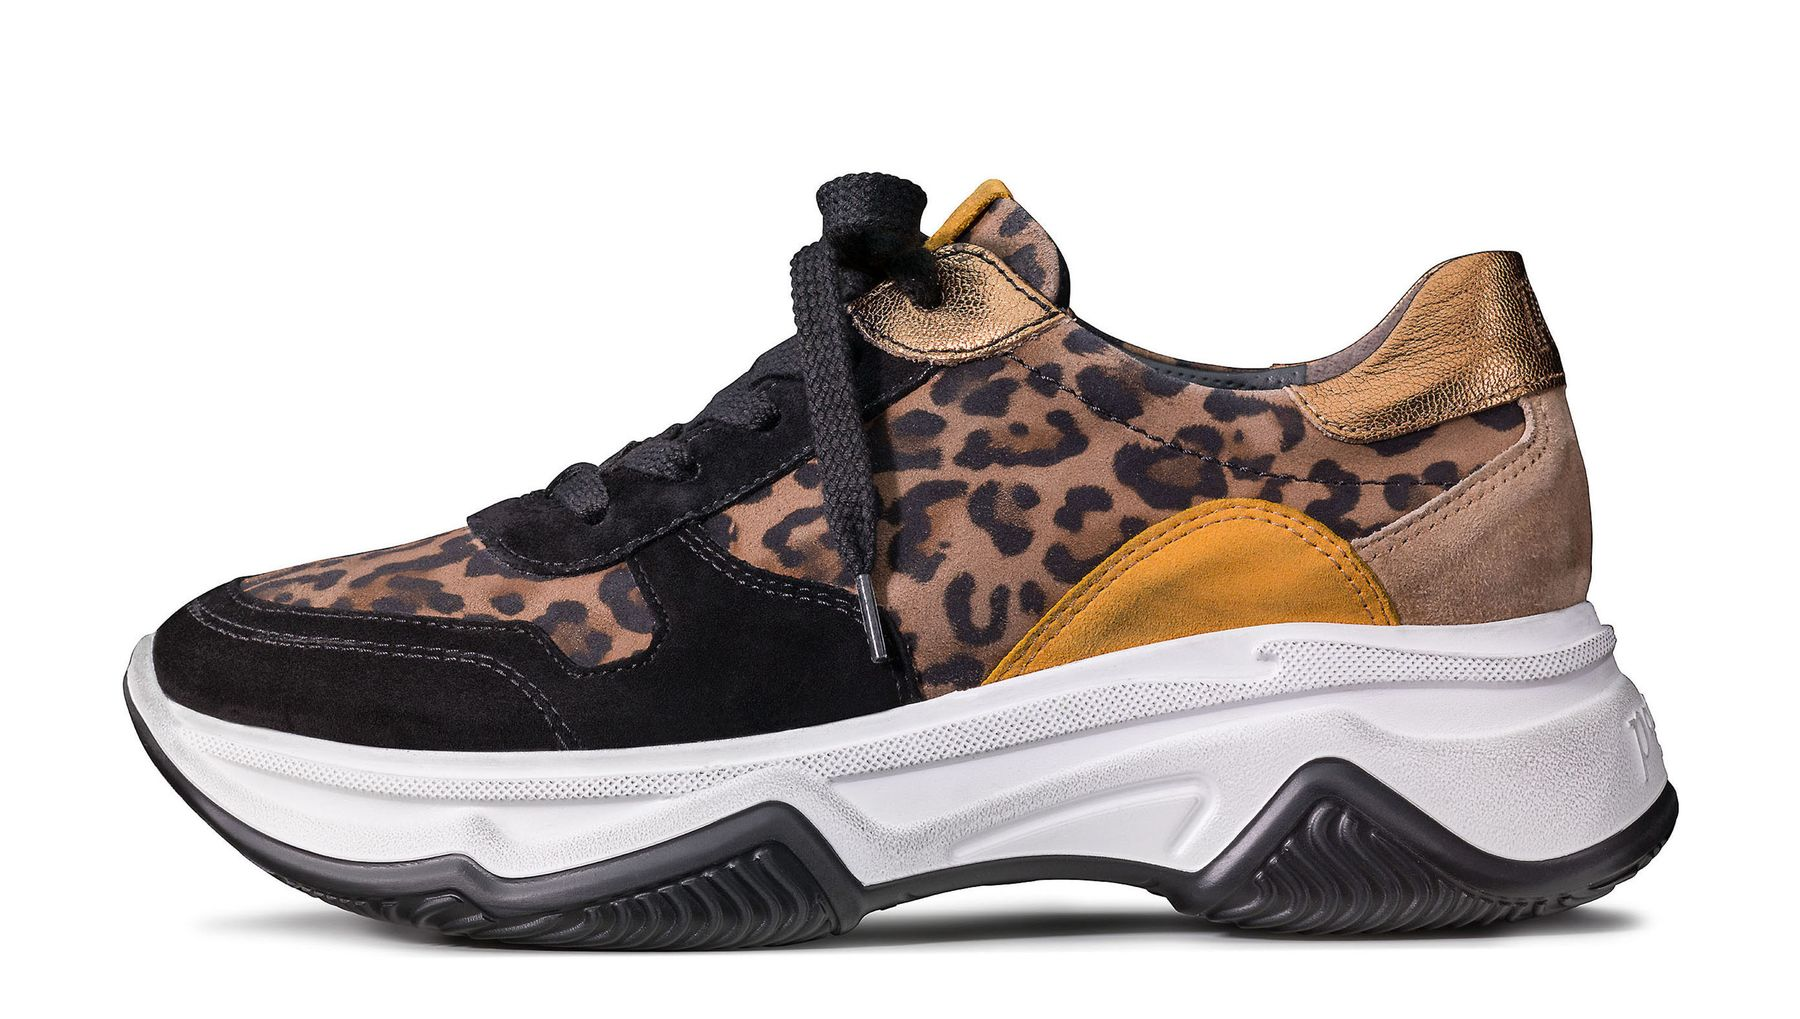 Plateau sneakers in black with leopard